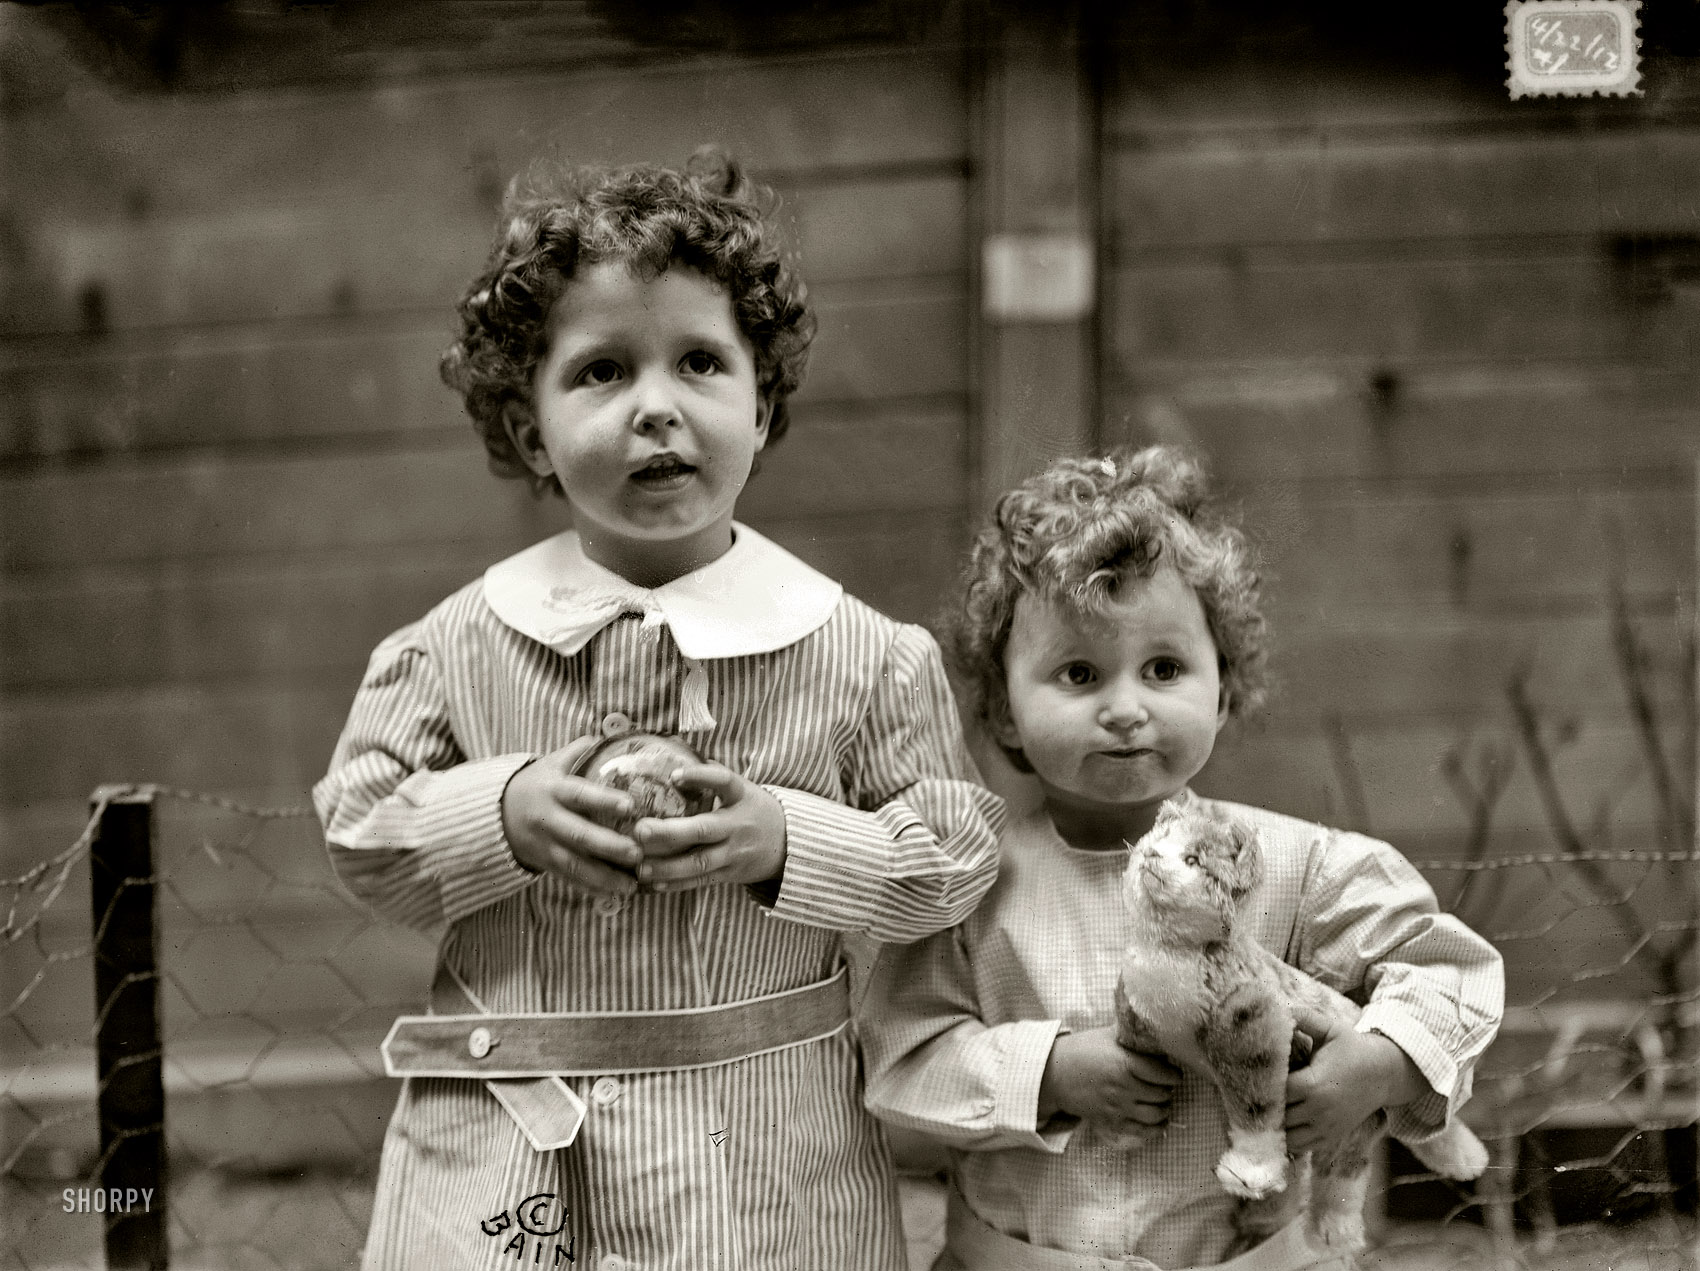 michael-lolo-and-edmond-navratil-ages-4-and-2-survived-the-sinking-of-the-titanic-1912